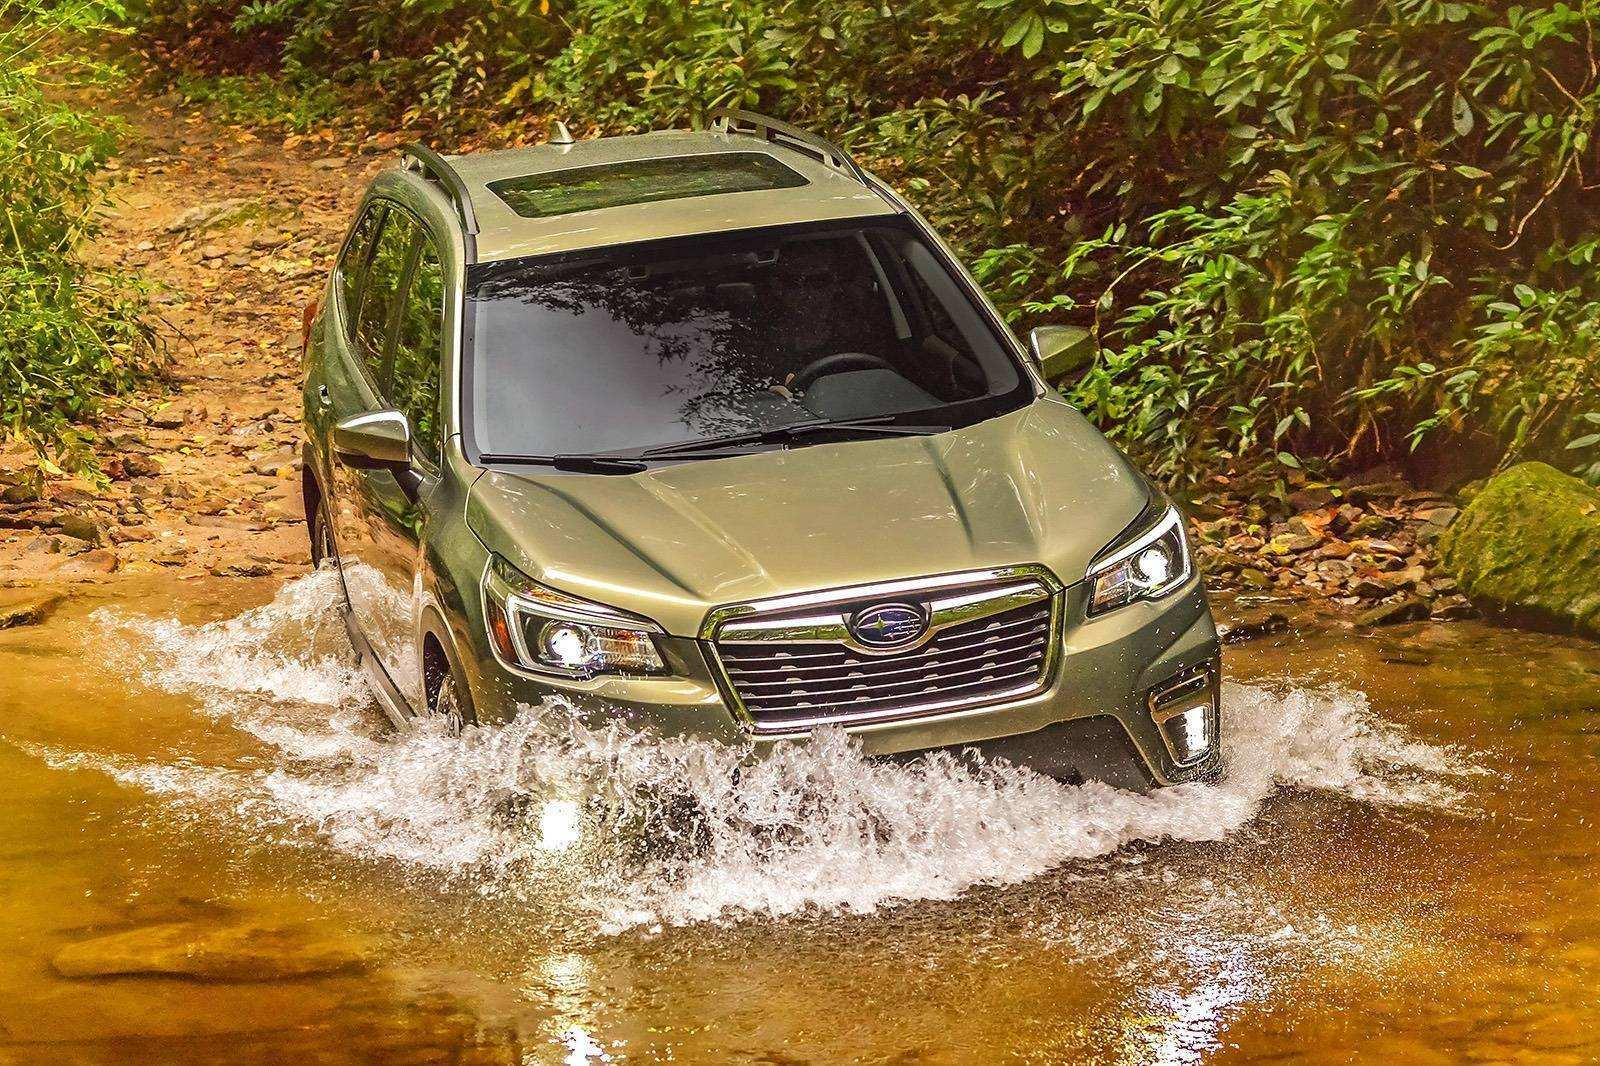 79 Gallery of Subaru Forester 2019 Ground Clearance Style for Subaru Forester 2019 Ground Clearance